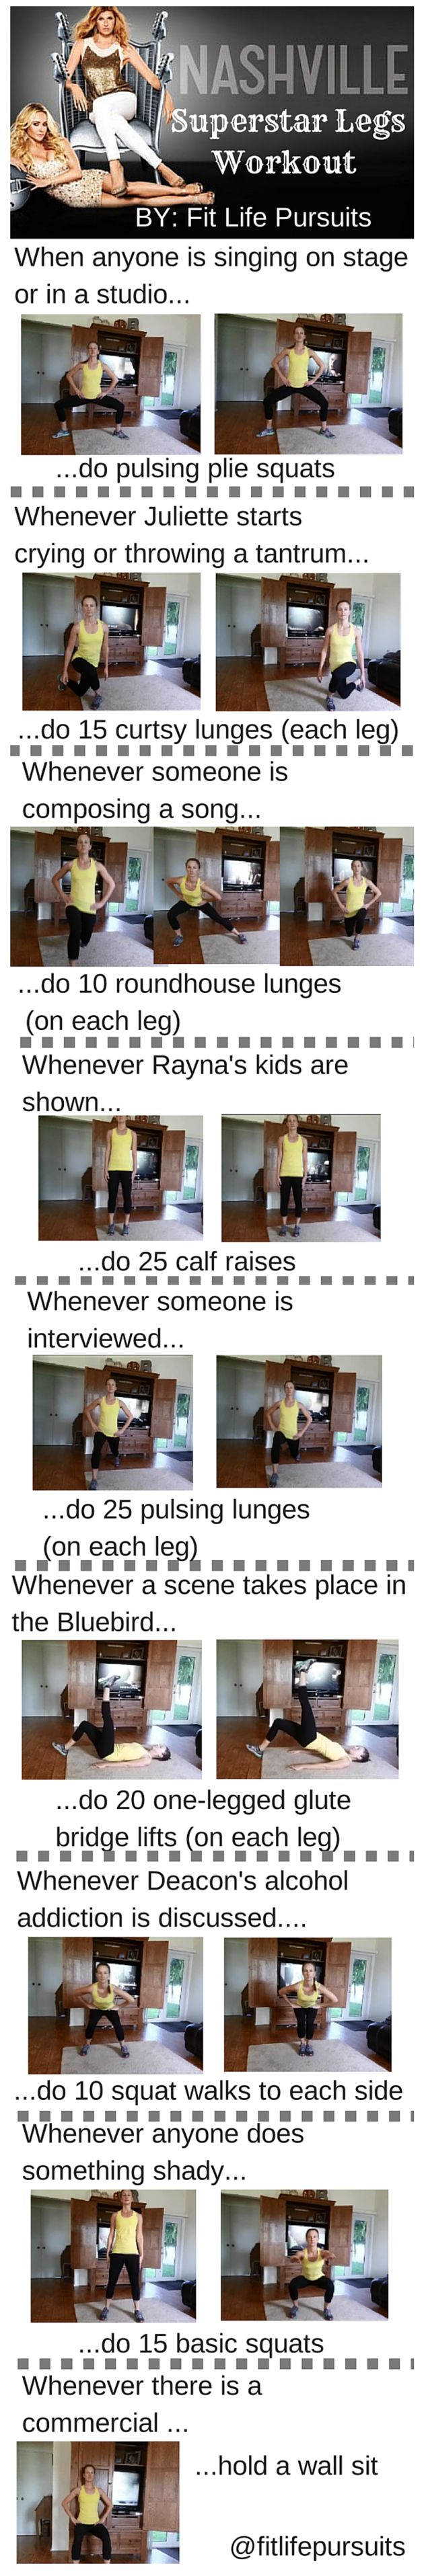 Get Superstar Legs with This Nashville TV Show Workout fitlifepursuits.com